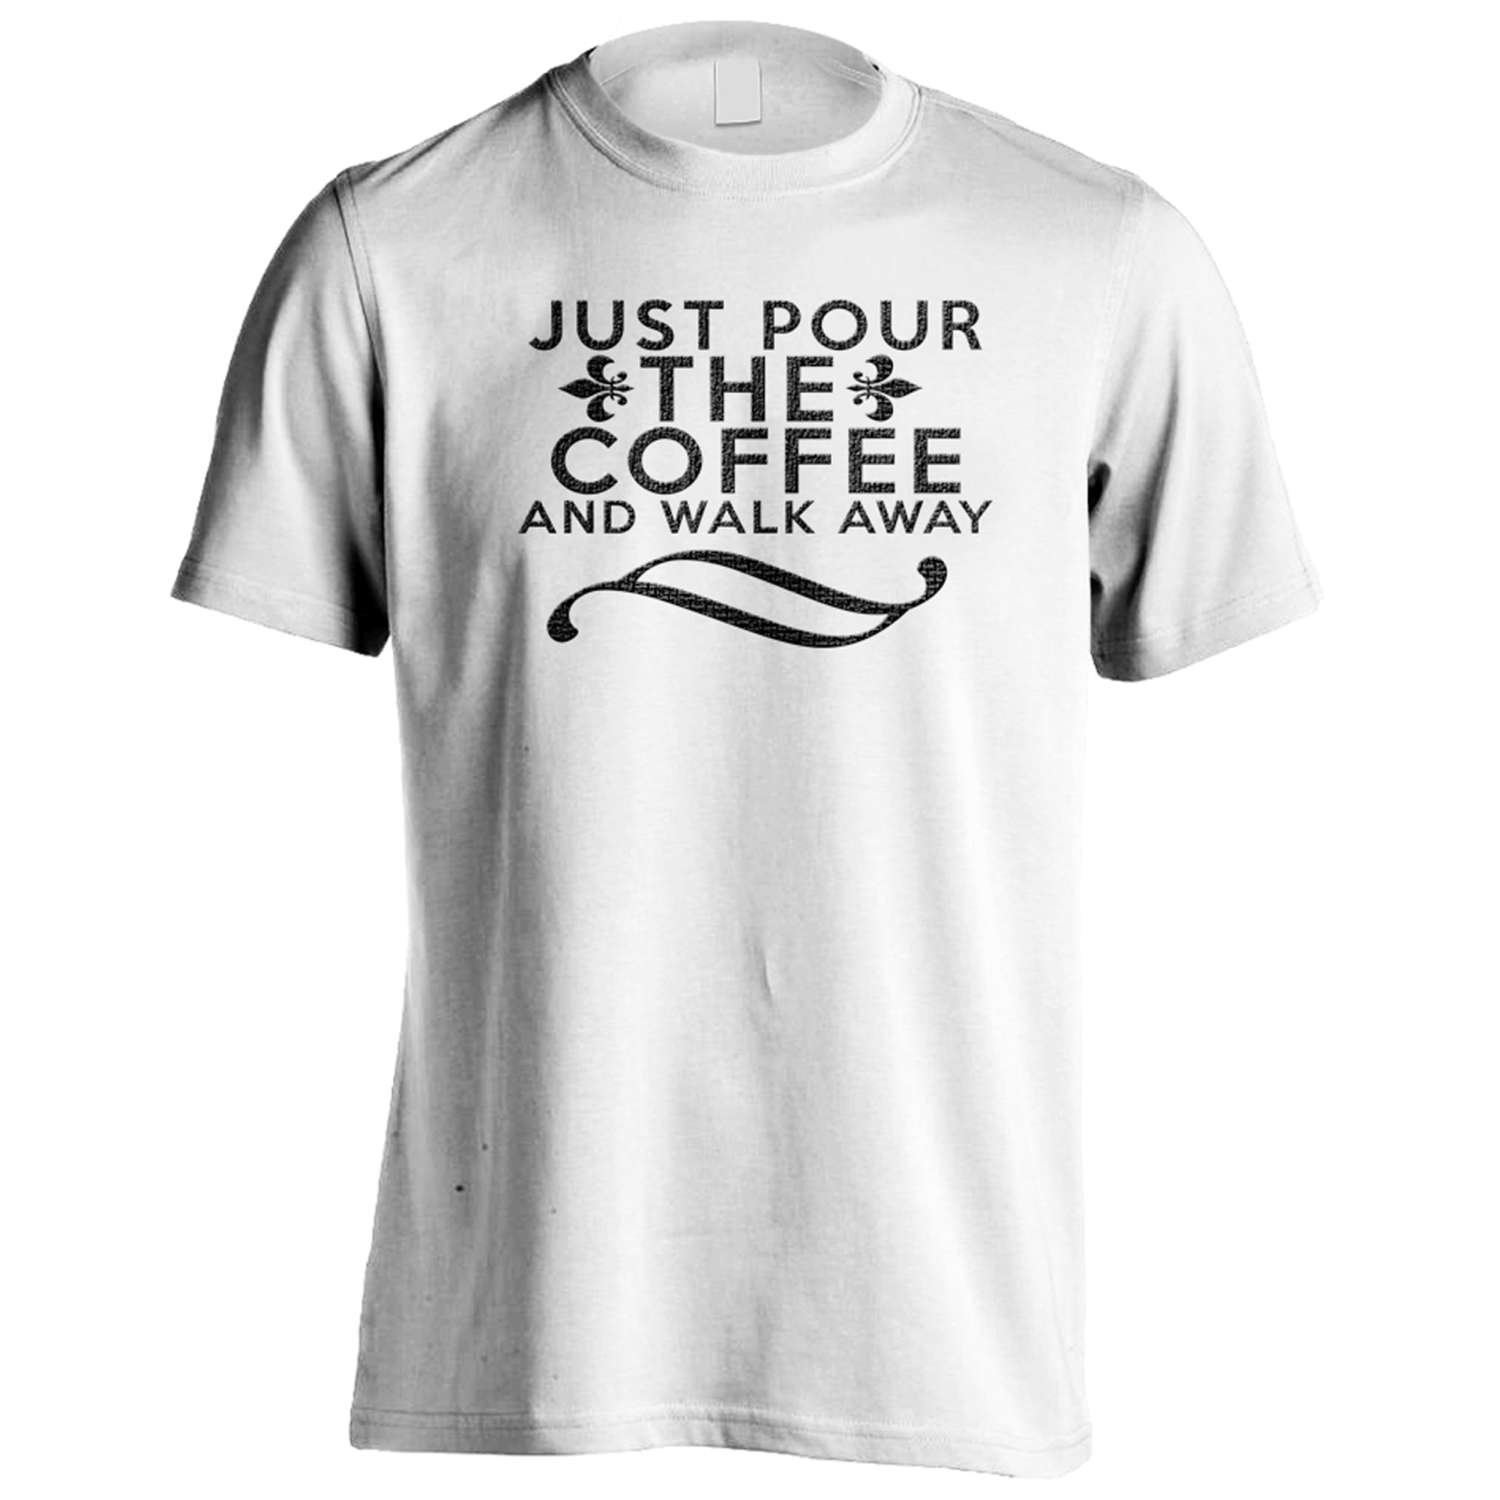 Just Pour Coffee And Walk Away Funny Novelty Men's T-Shirt Tee c26m